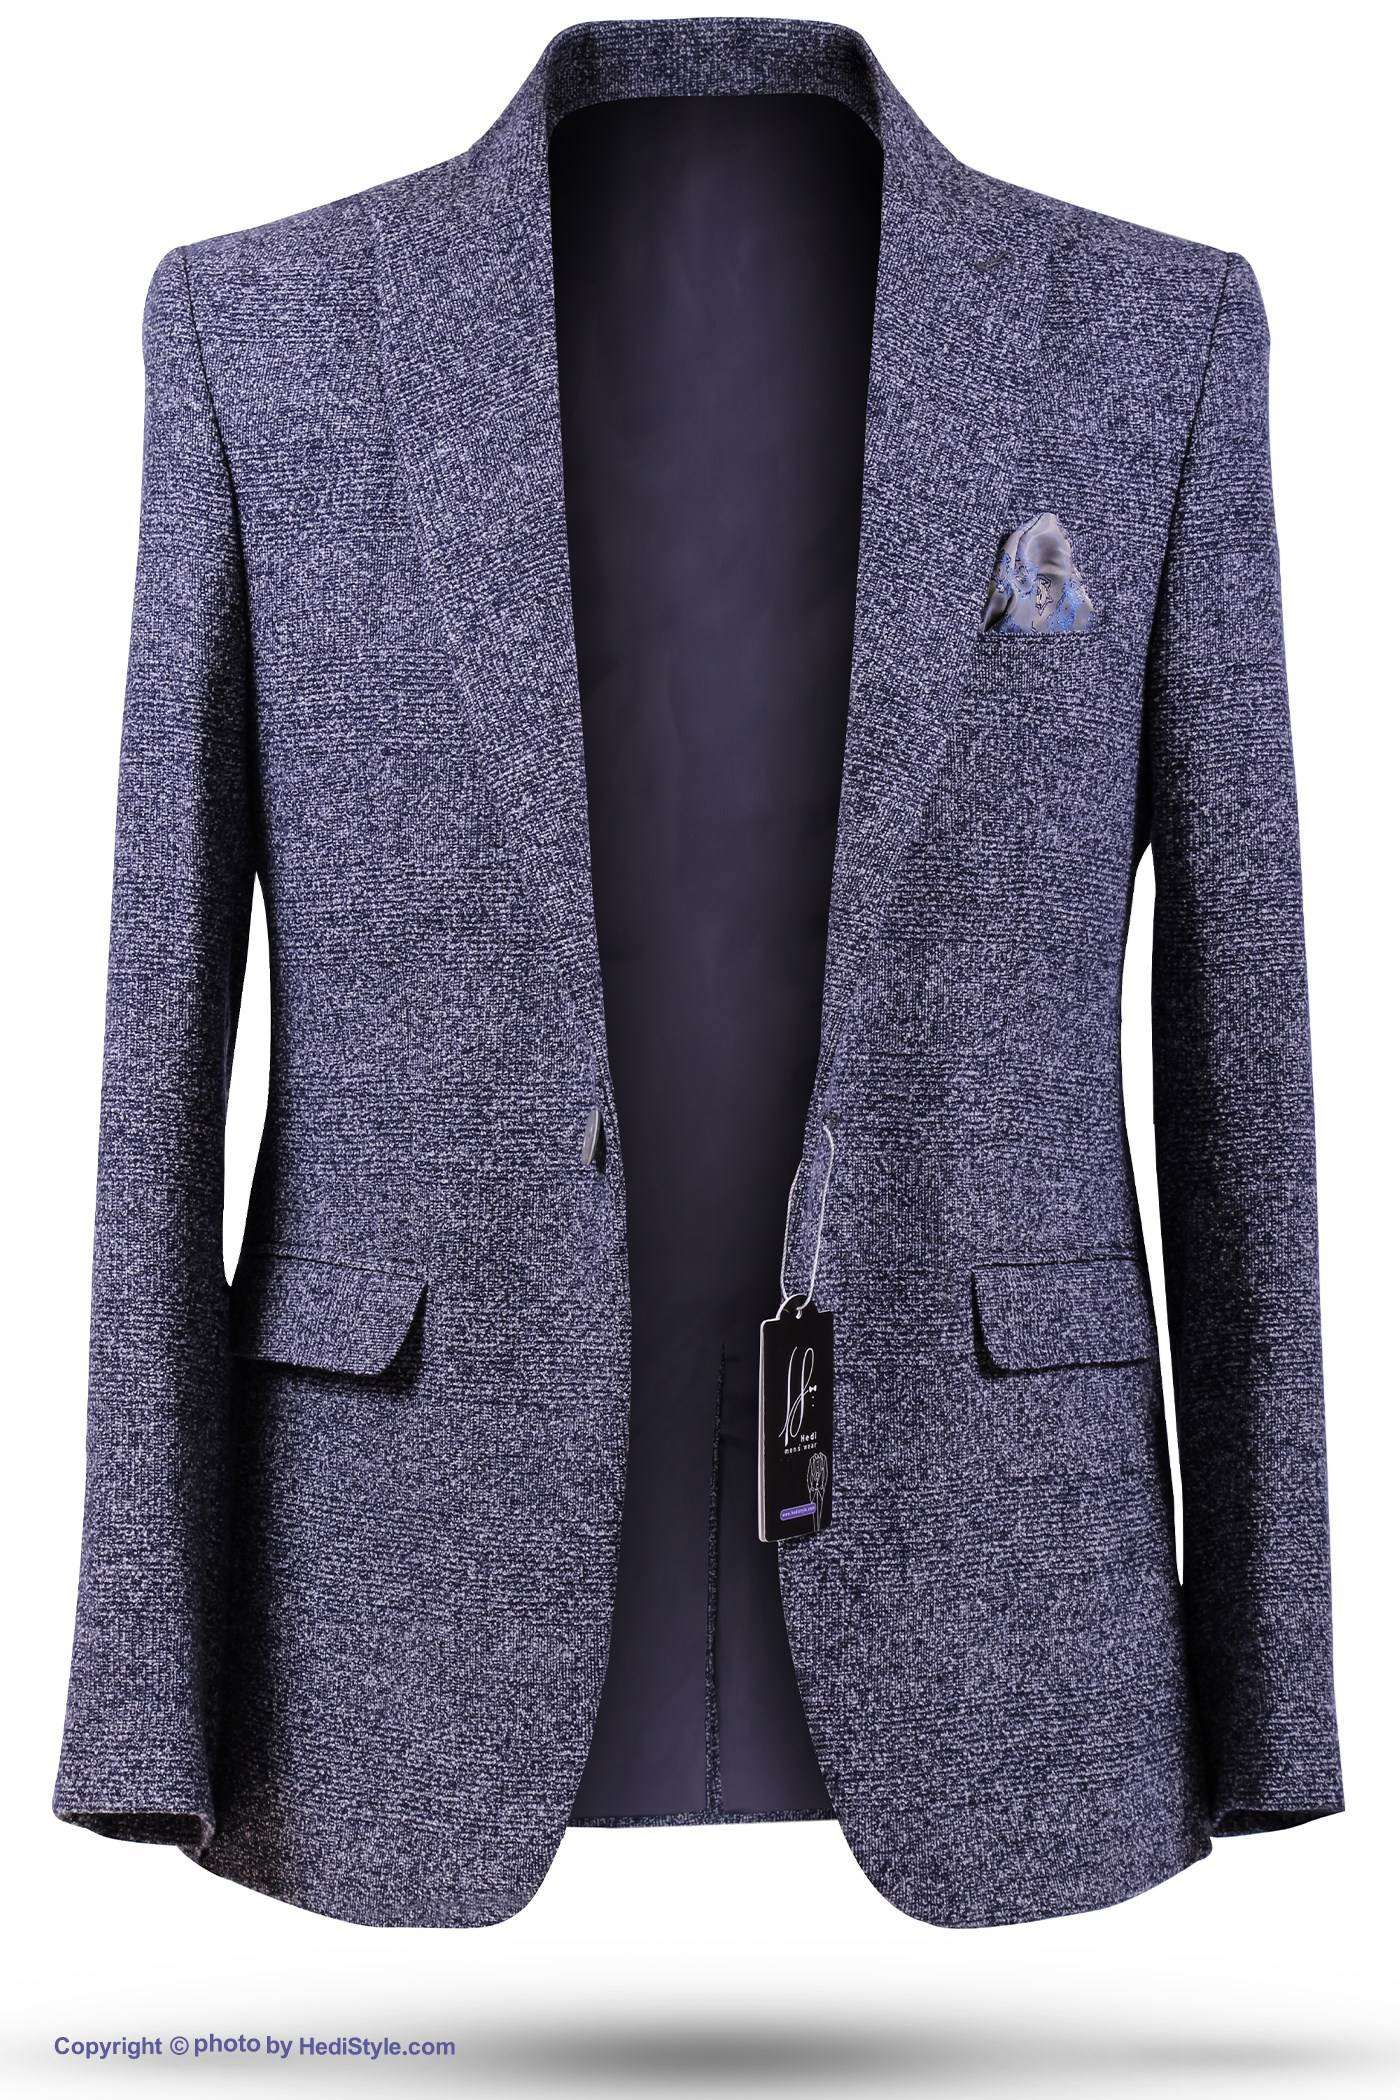 Men's single coat